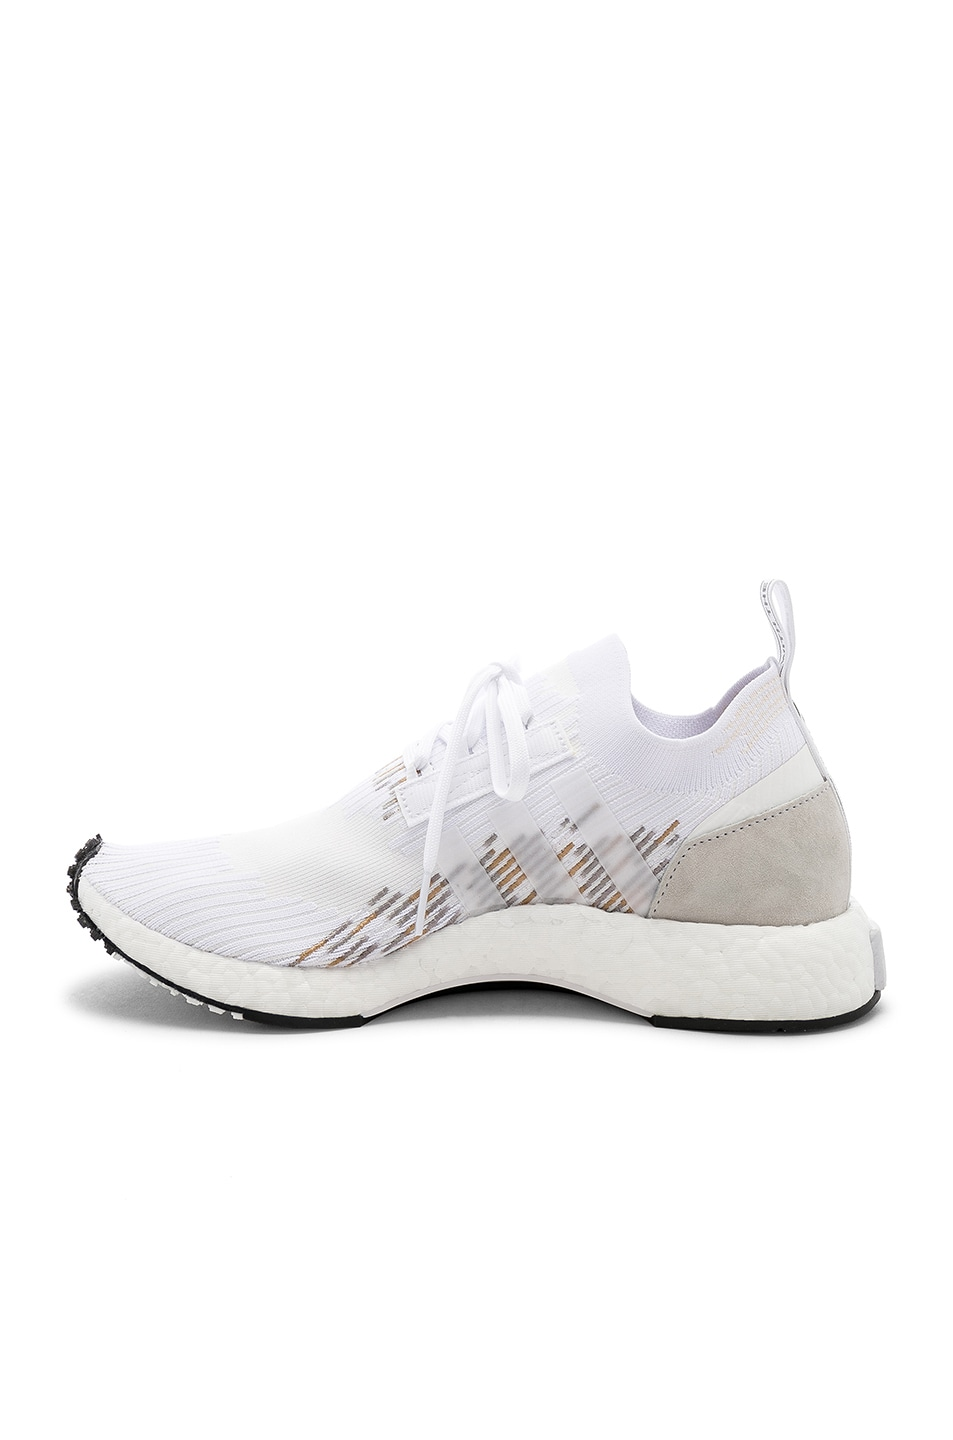 006304eb8 Image 5 of adidas Originals NMD Racer PK in White   White   White